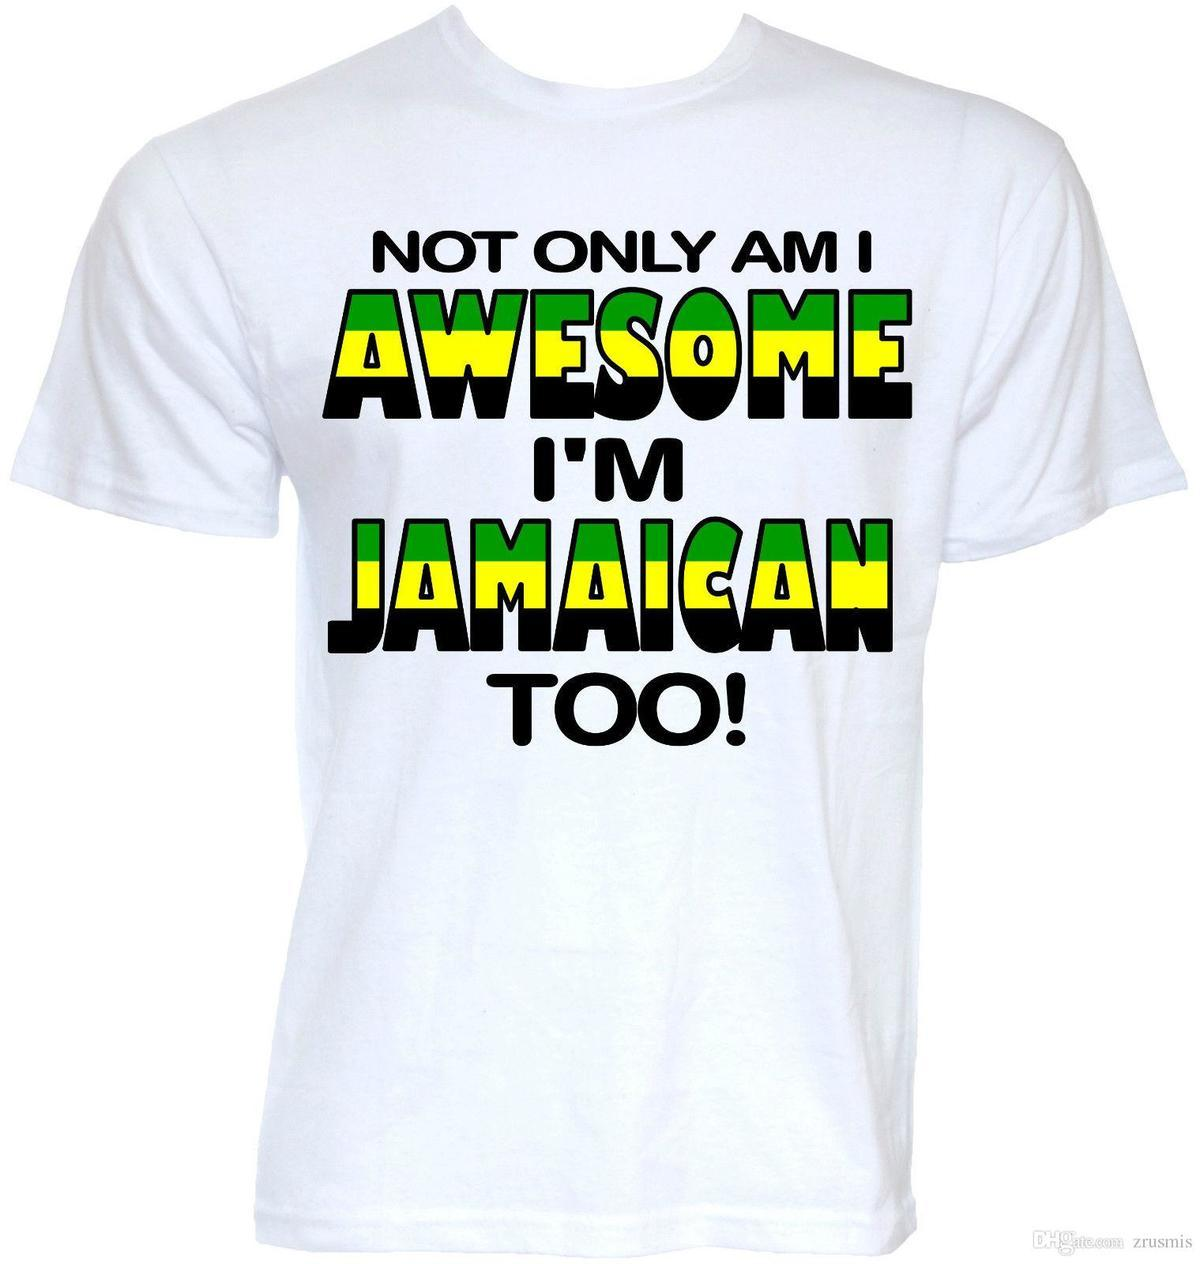 80866e05 MENS FUNNY COOL JAMAICAN JAMAICA FLAG SLOGAN T SHIRTS NOVELTY JOKE GIFTS  PRESENT T Shirt Tops Summer Cool Funny T Shirt Witty Tee Shirts Tee Shirt  Funny ...